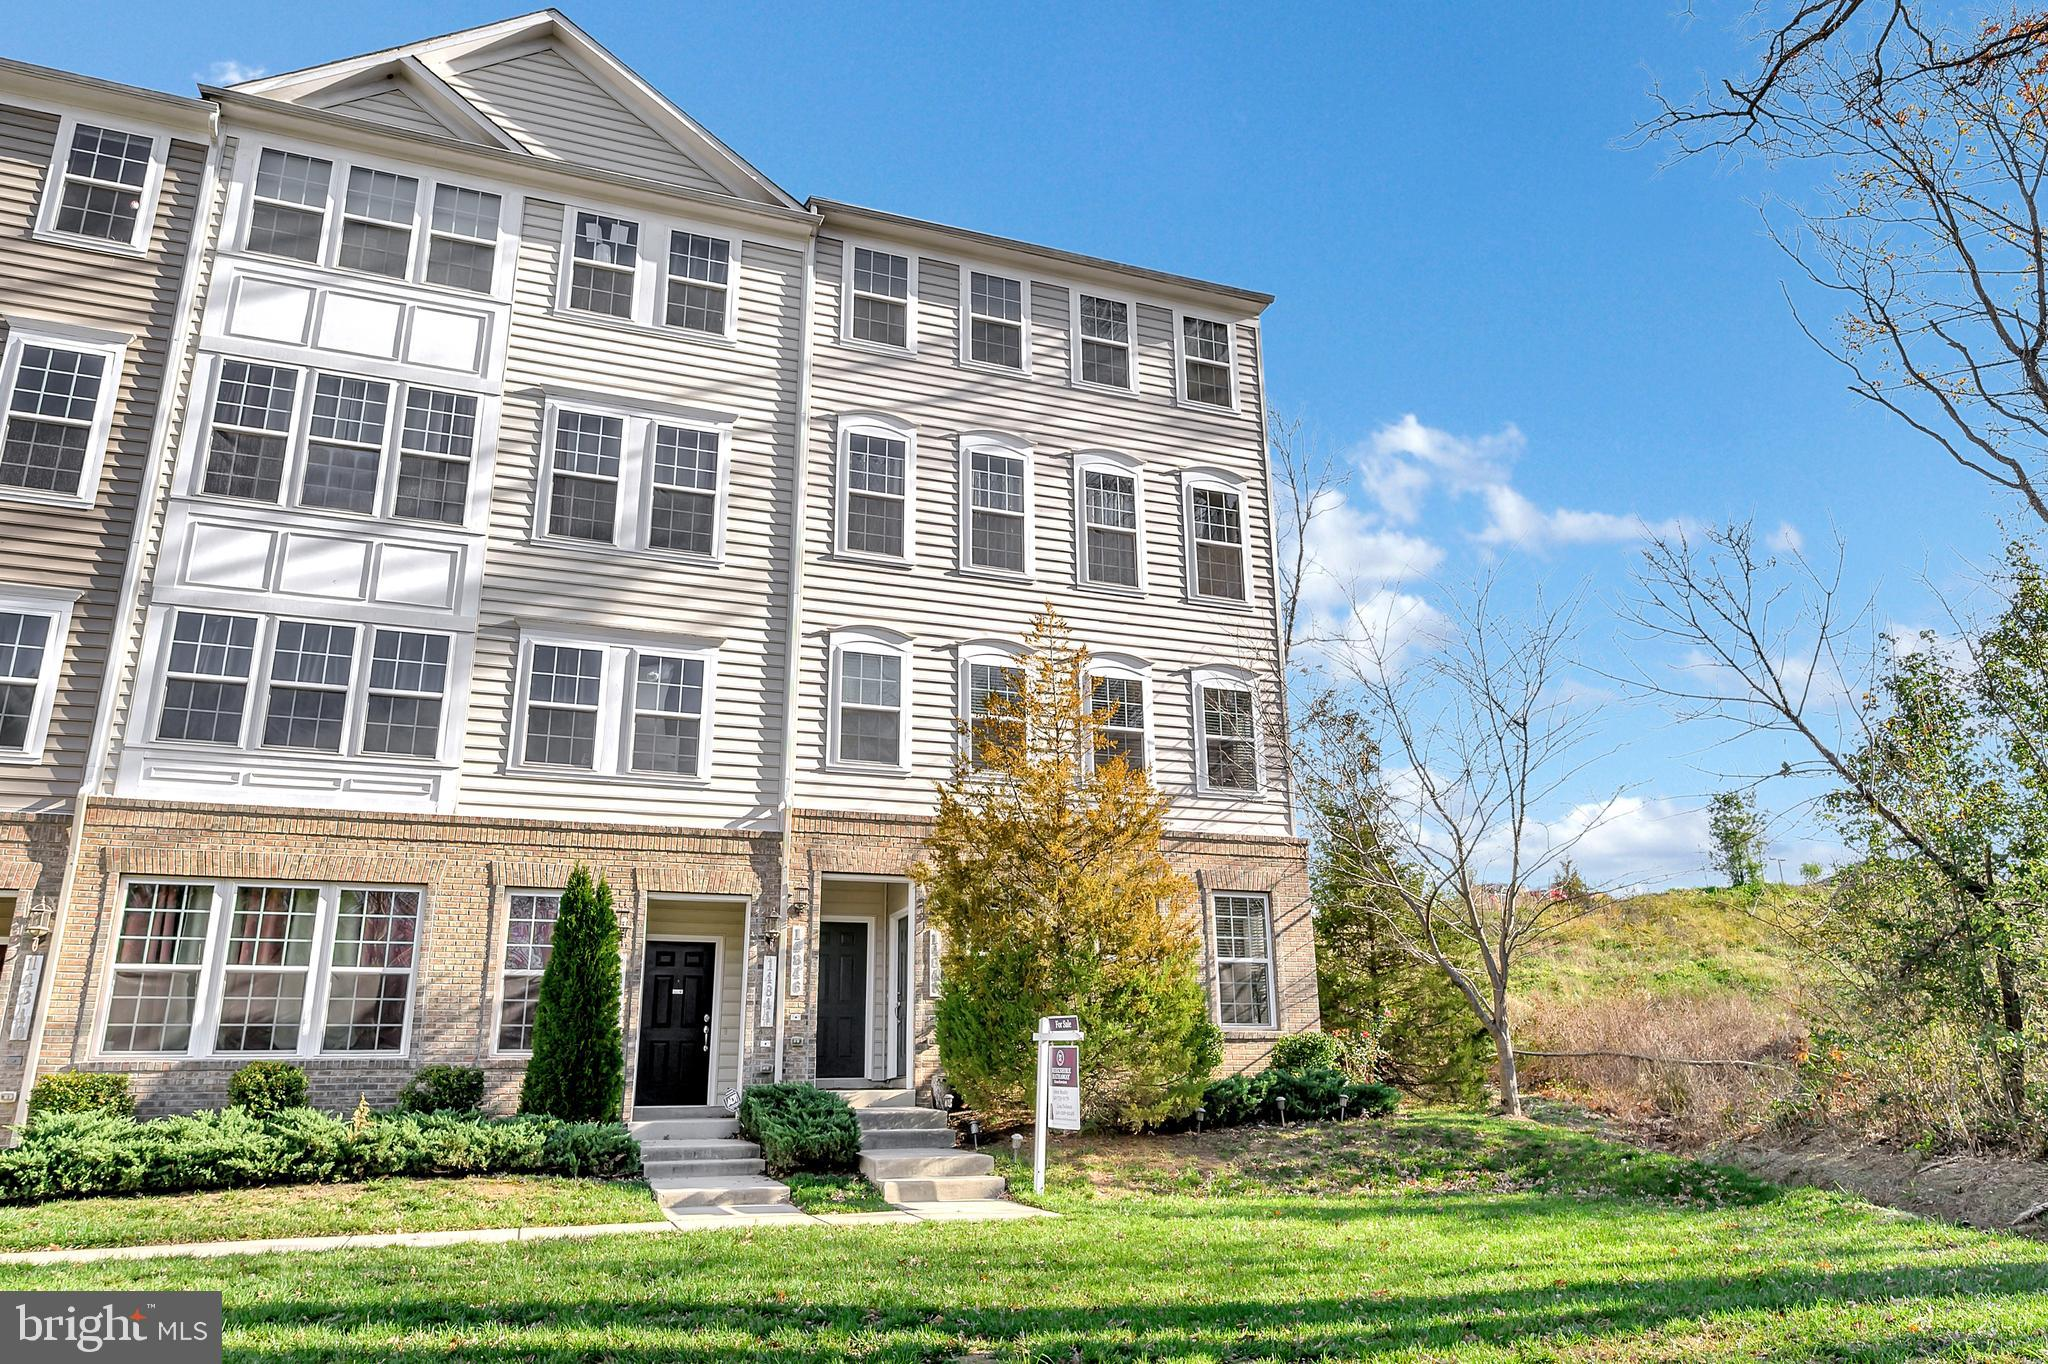 2 level condo townhome. This end unit townhome has been remodeled with all the bells and whistles. A